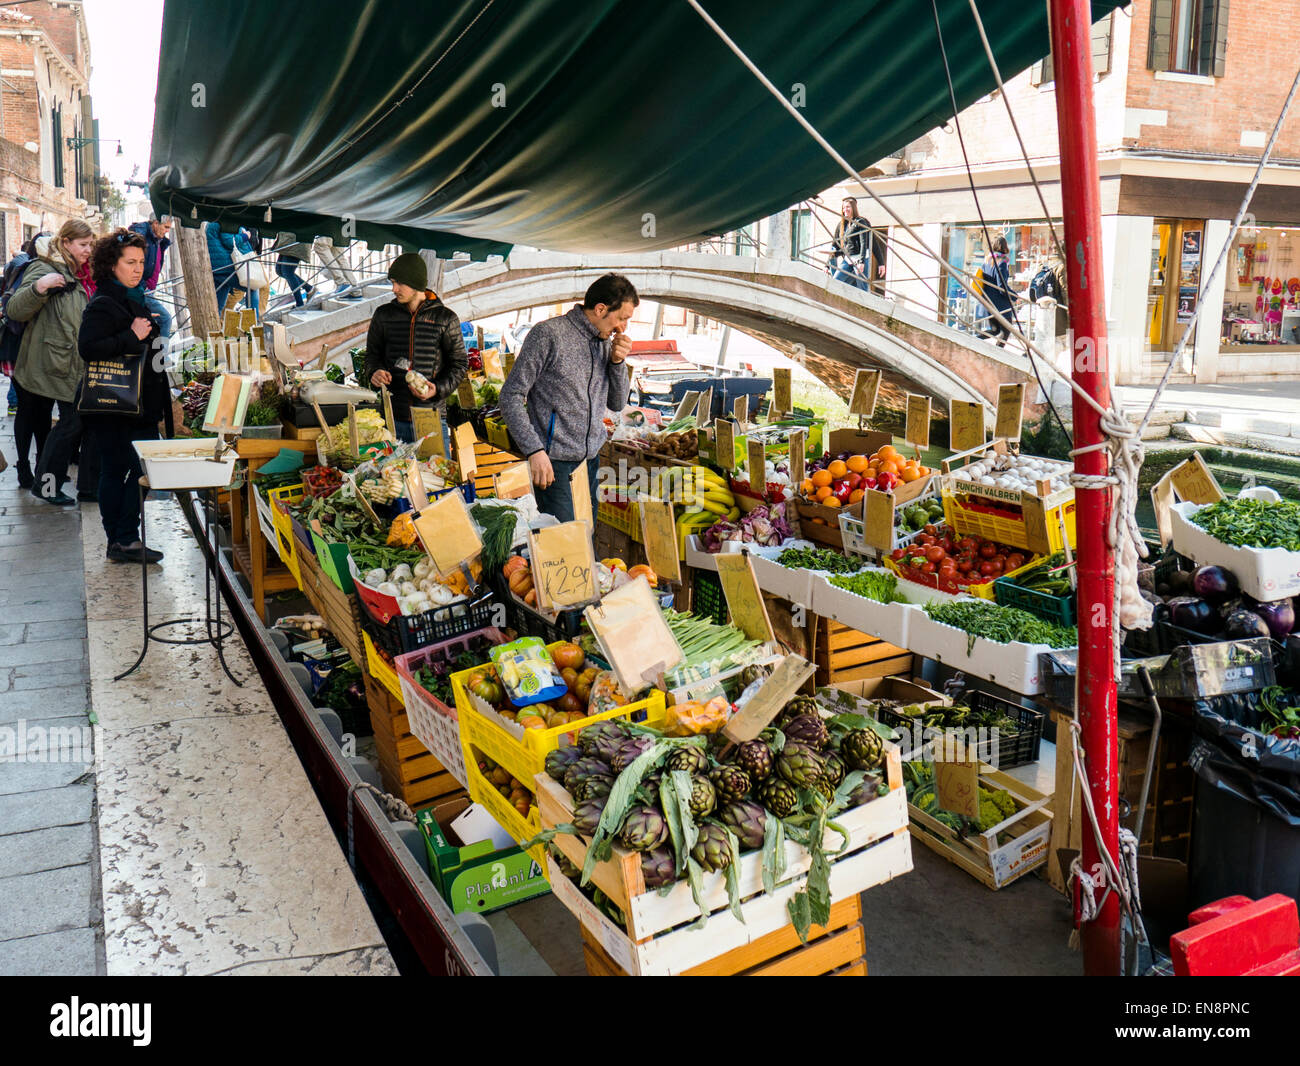 Vendor displays fresh fruit & vegetables on market boat, Venice, Italy, City of Canals - Stock Image